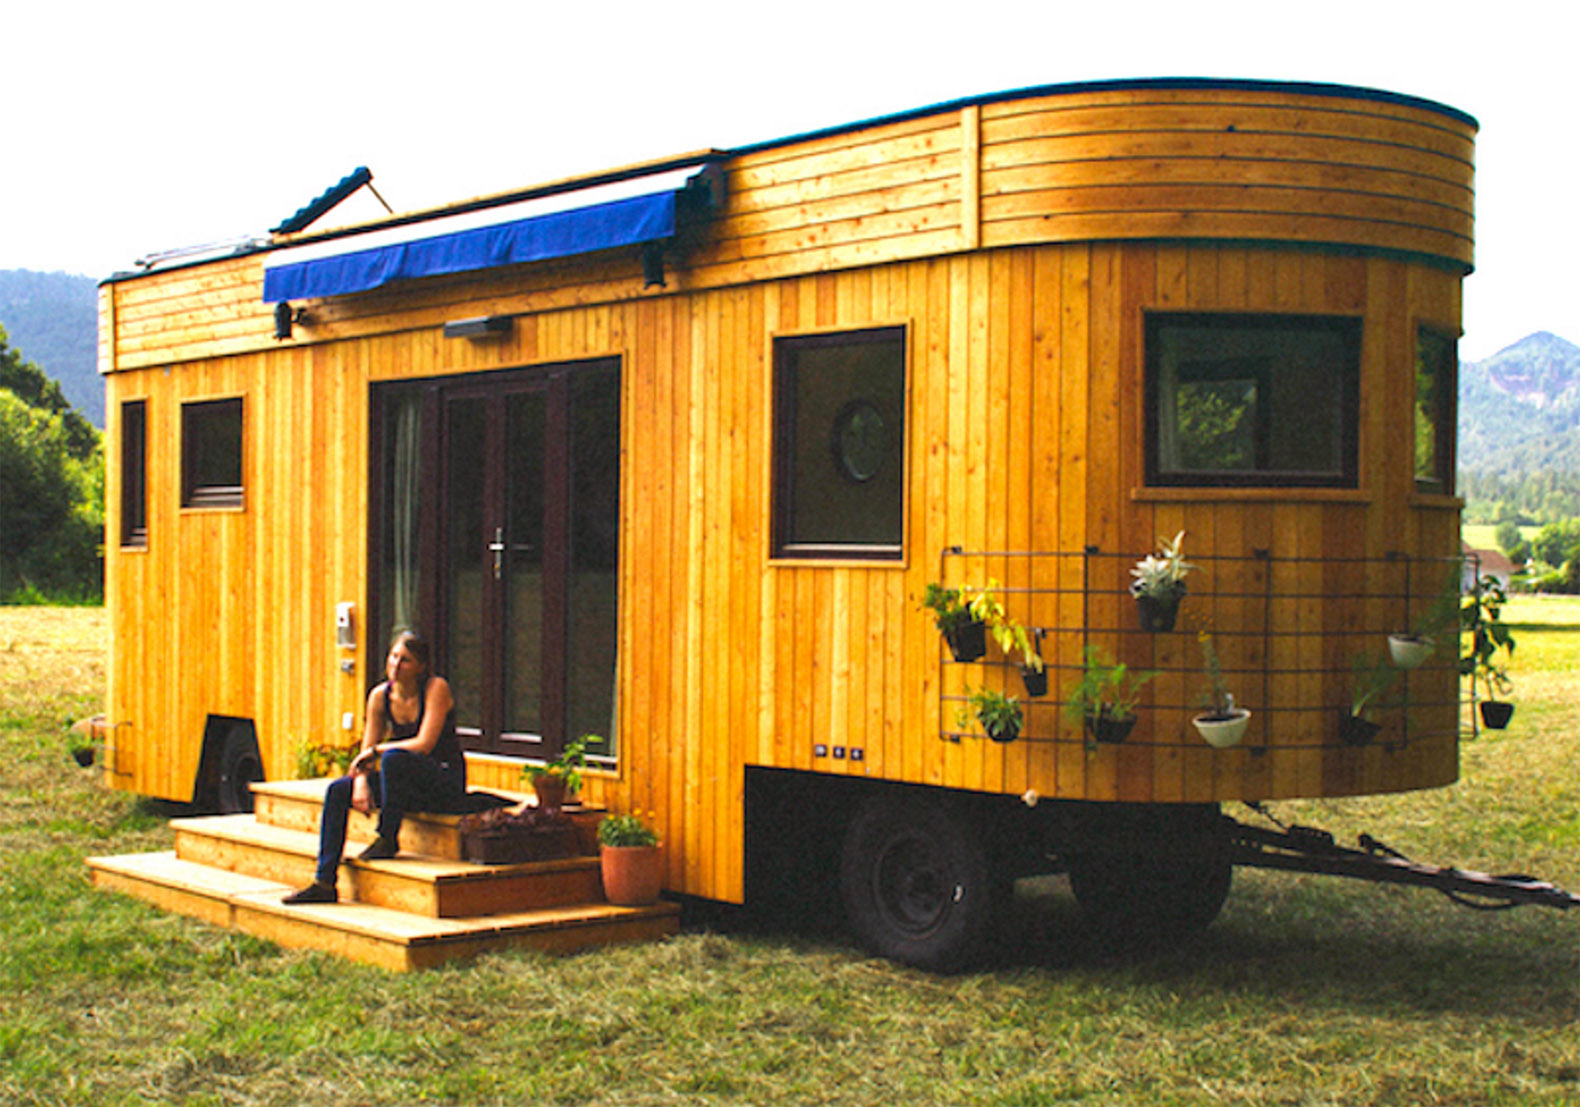 Good Live Off The Grid And Rent Free In The Charming Wohnwagon Mobile Caravan